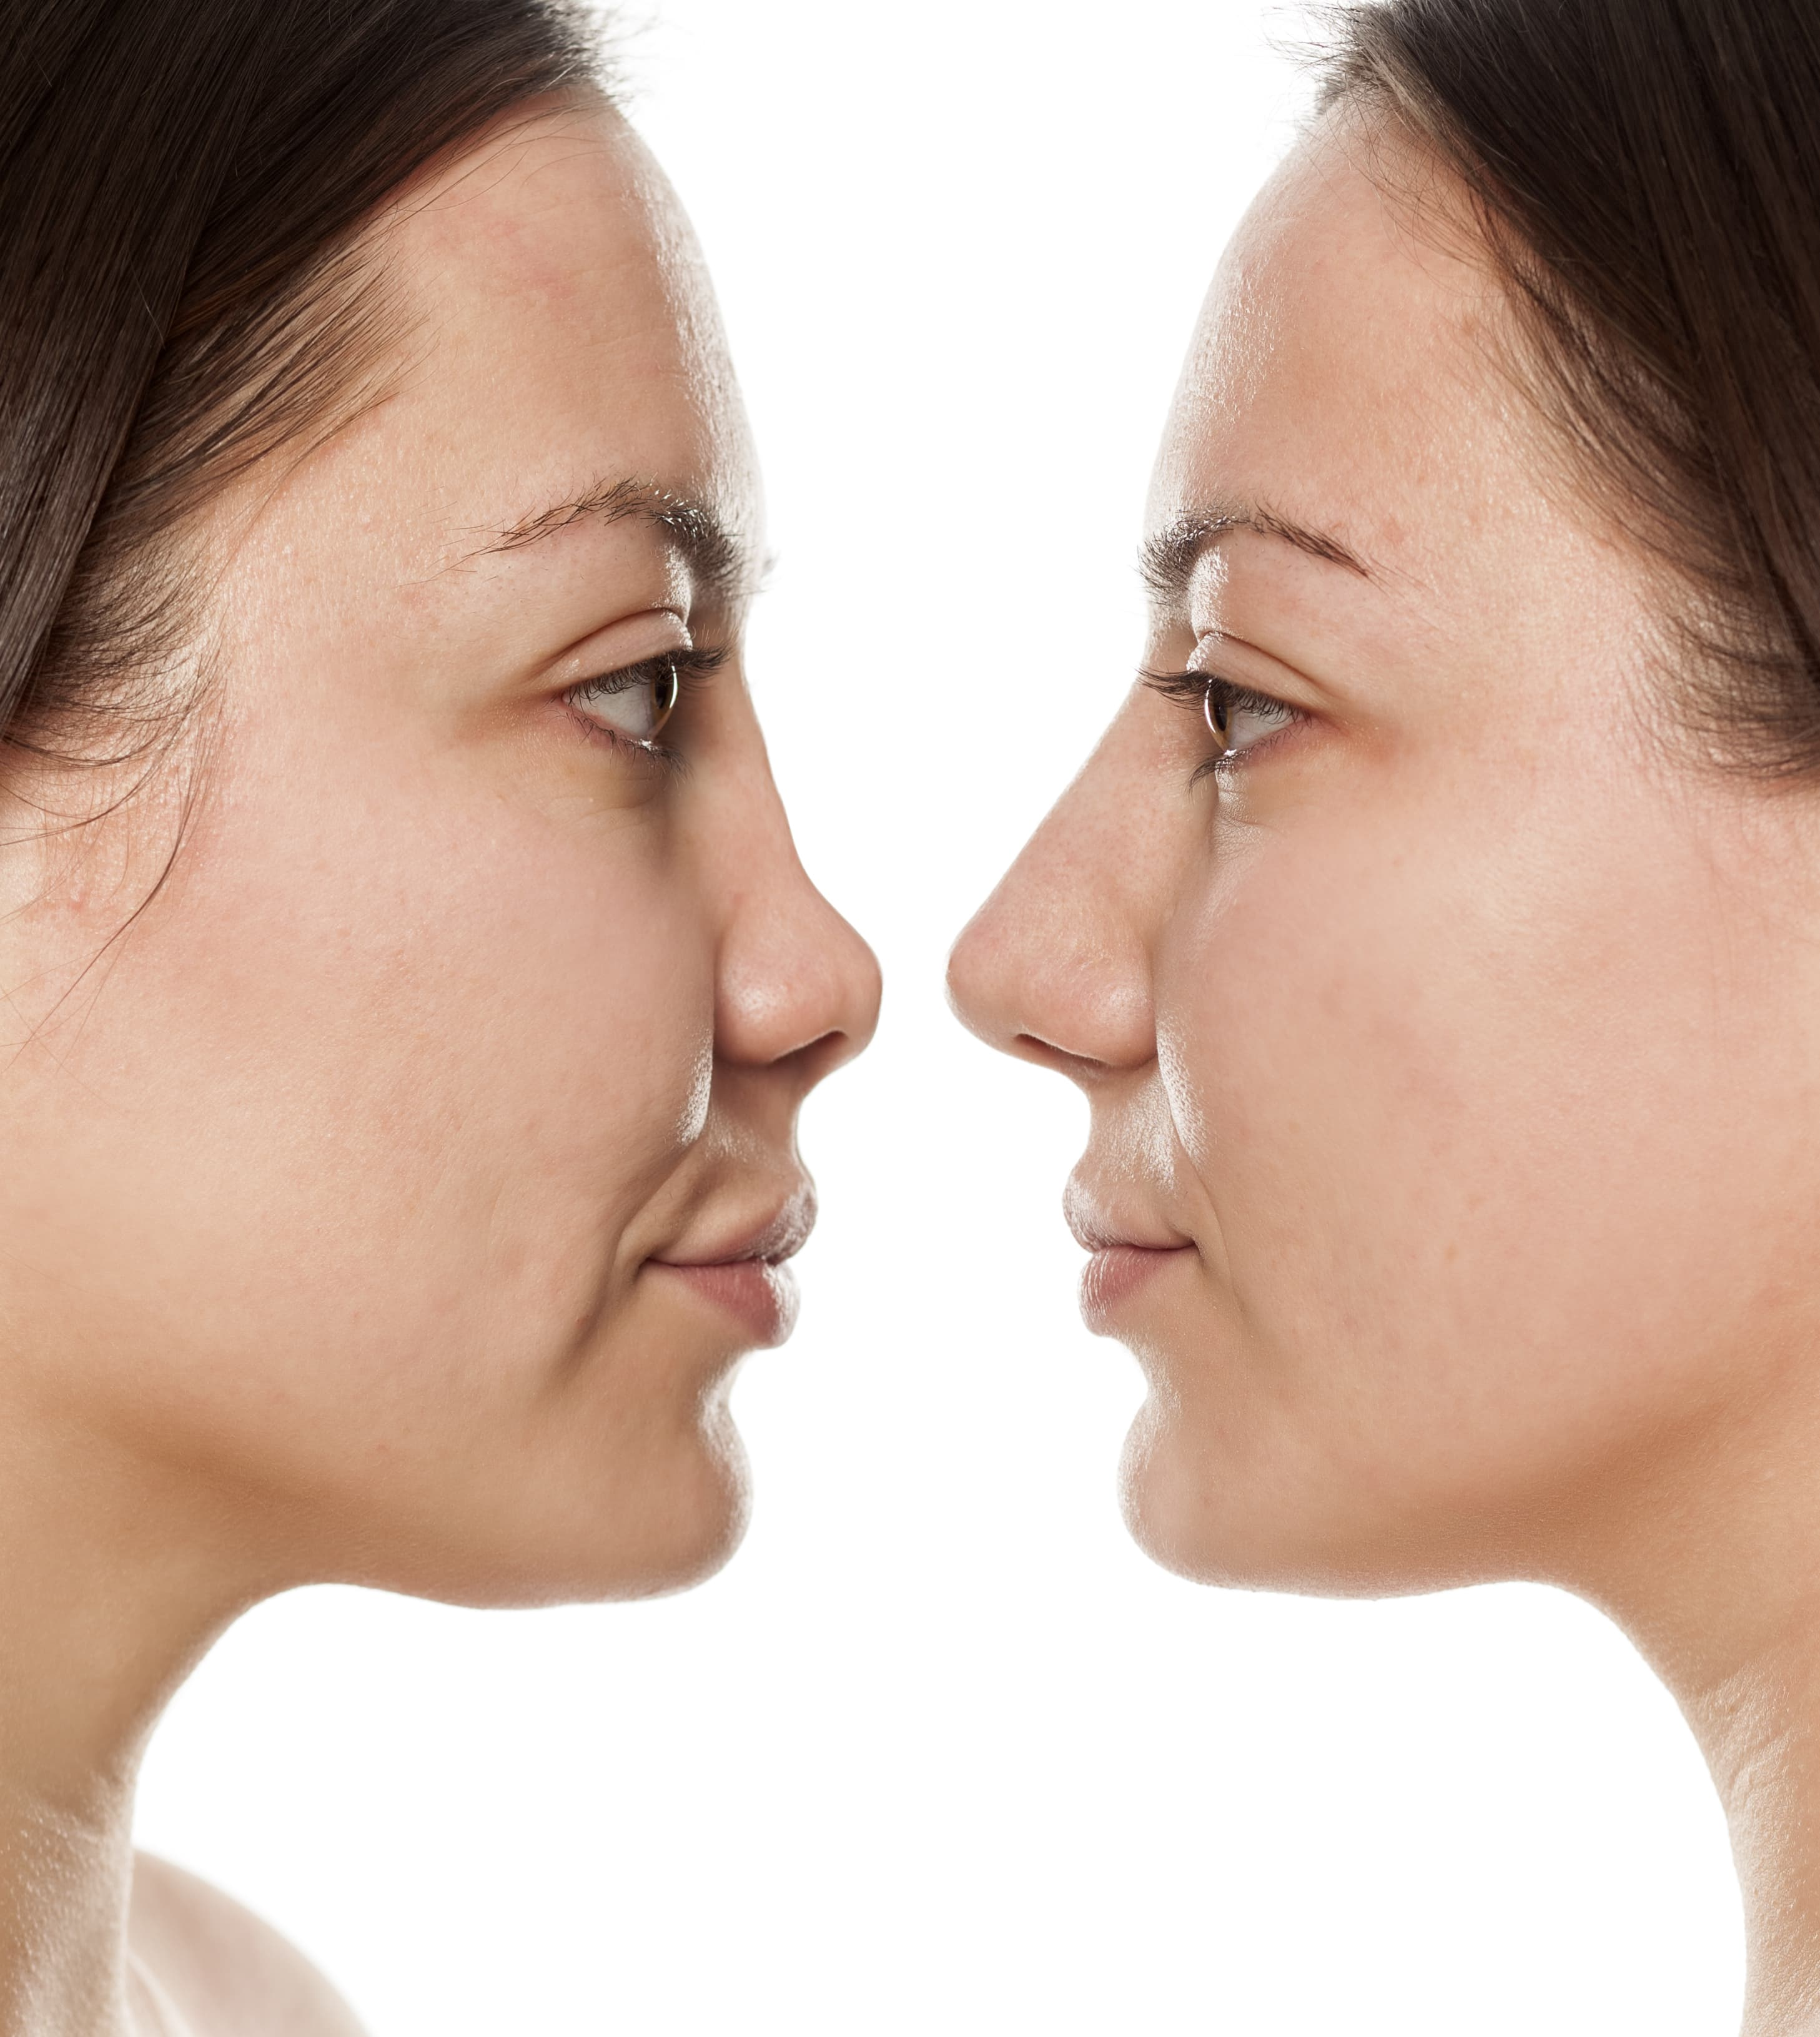 Face Plastic Surgery Before And After Pictures photo - 1